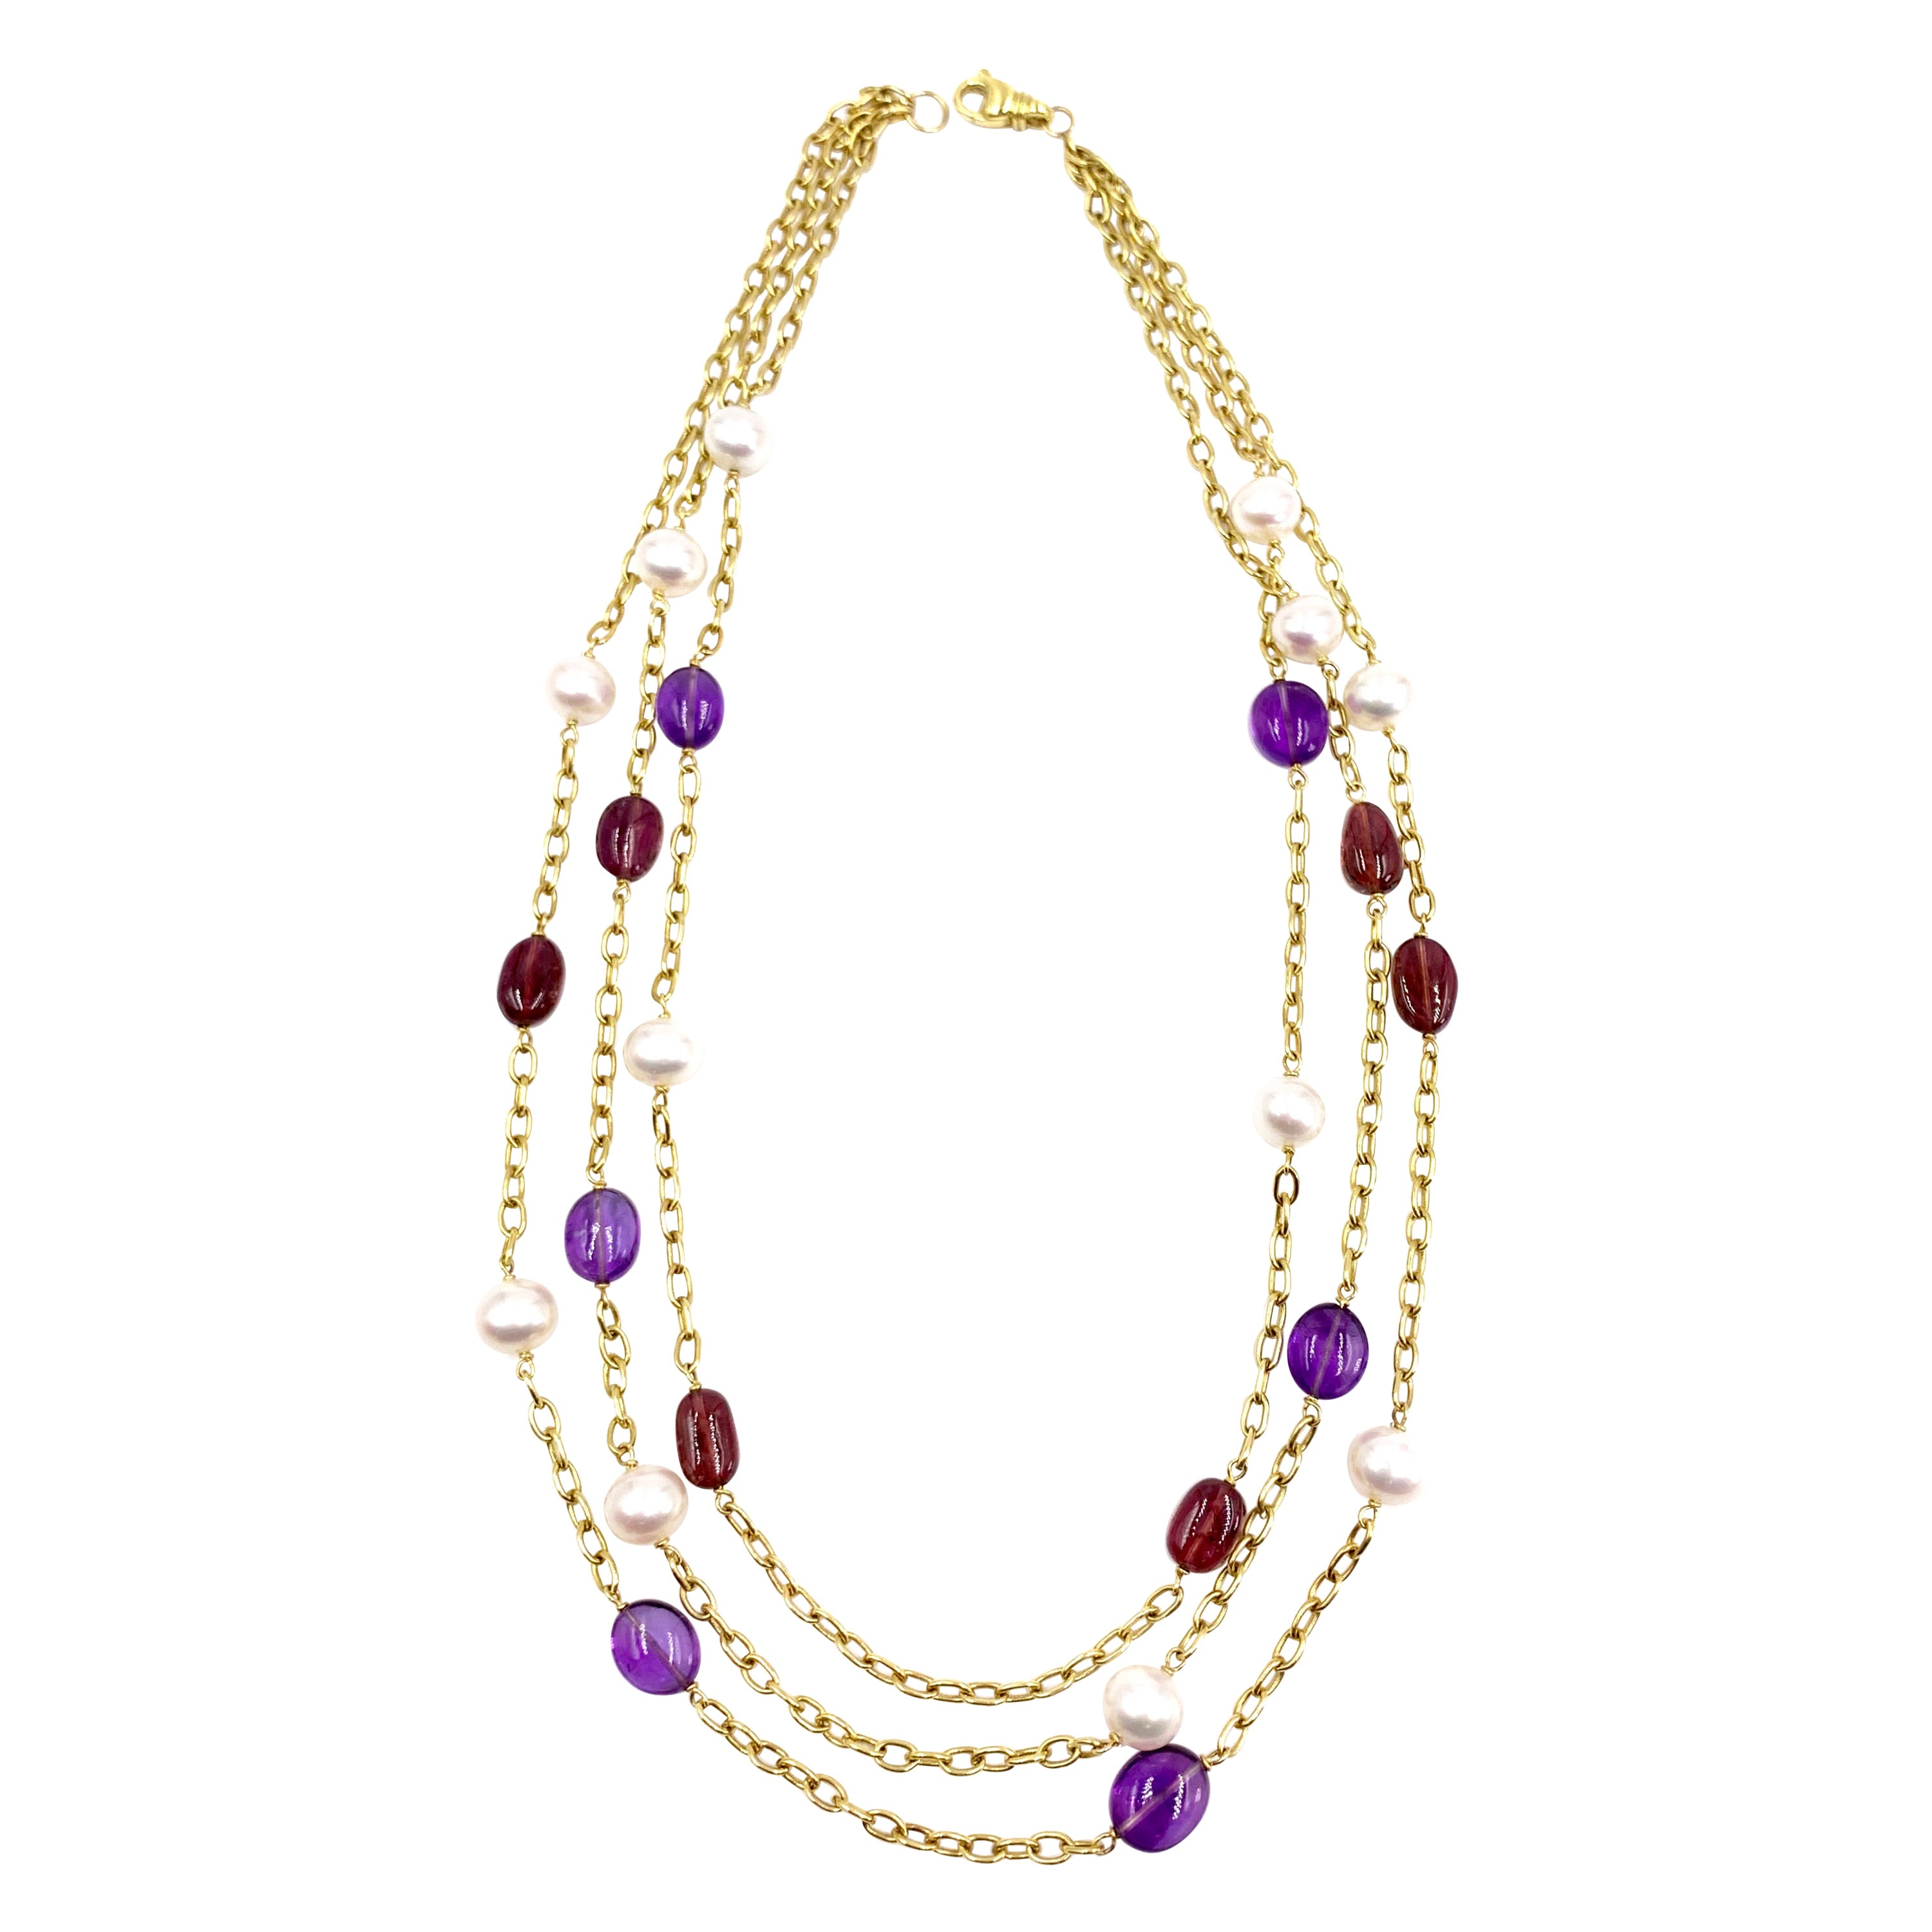 18 Karat Gold Three-Strand Pearl, Amethyst and Tourmaline Necklace